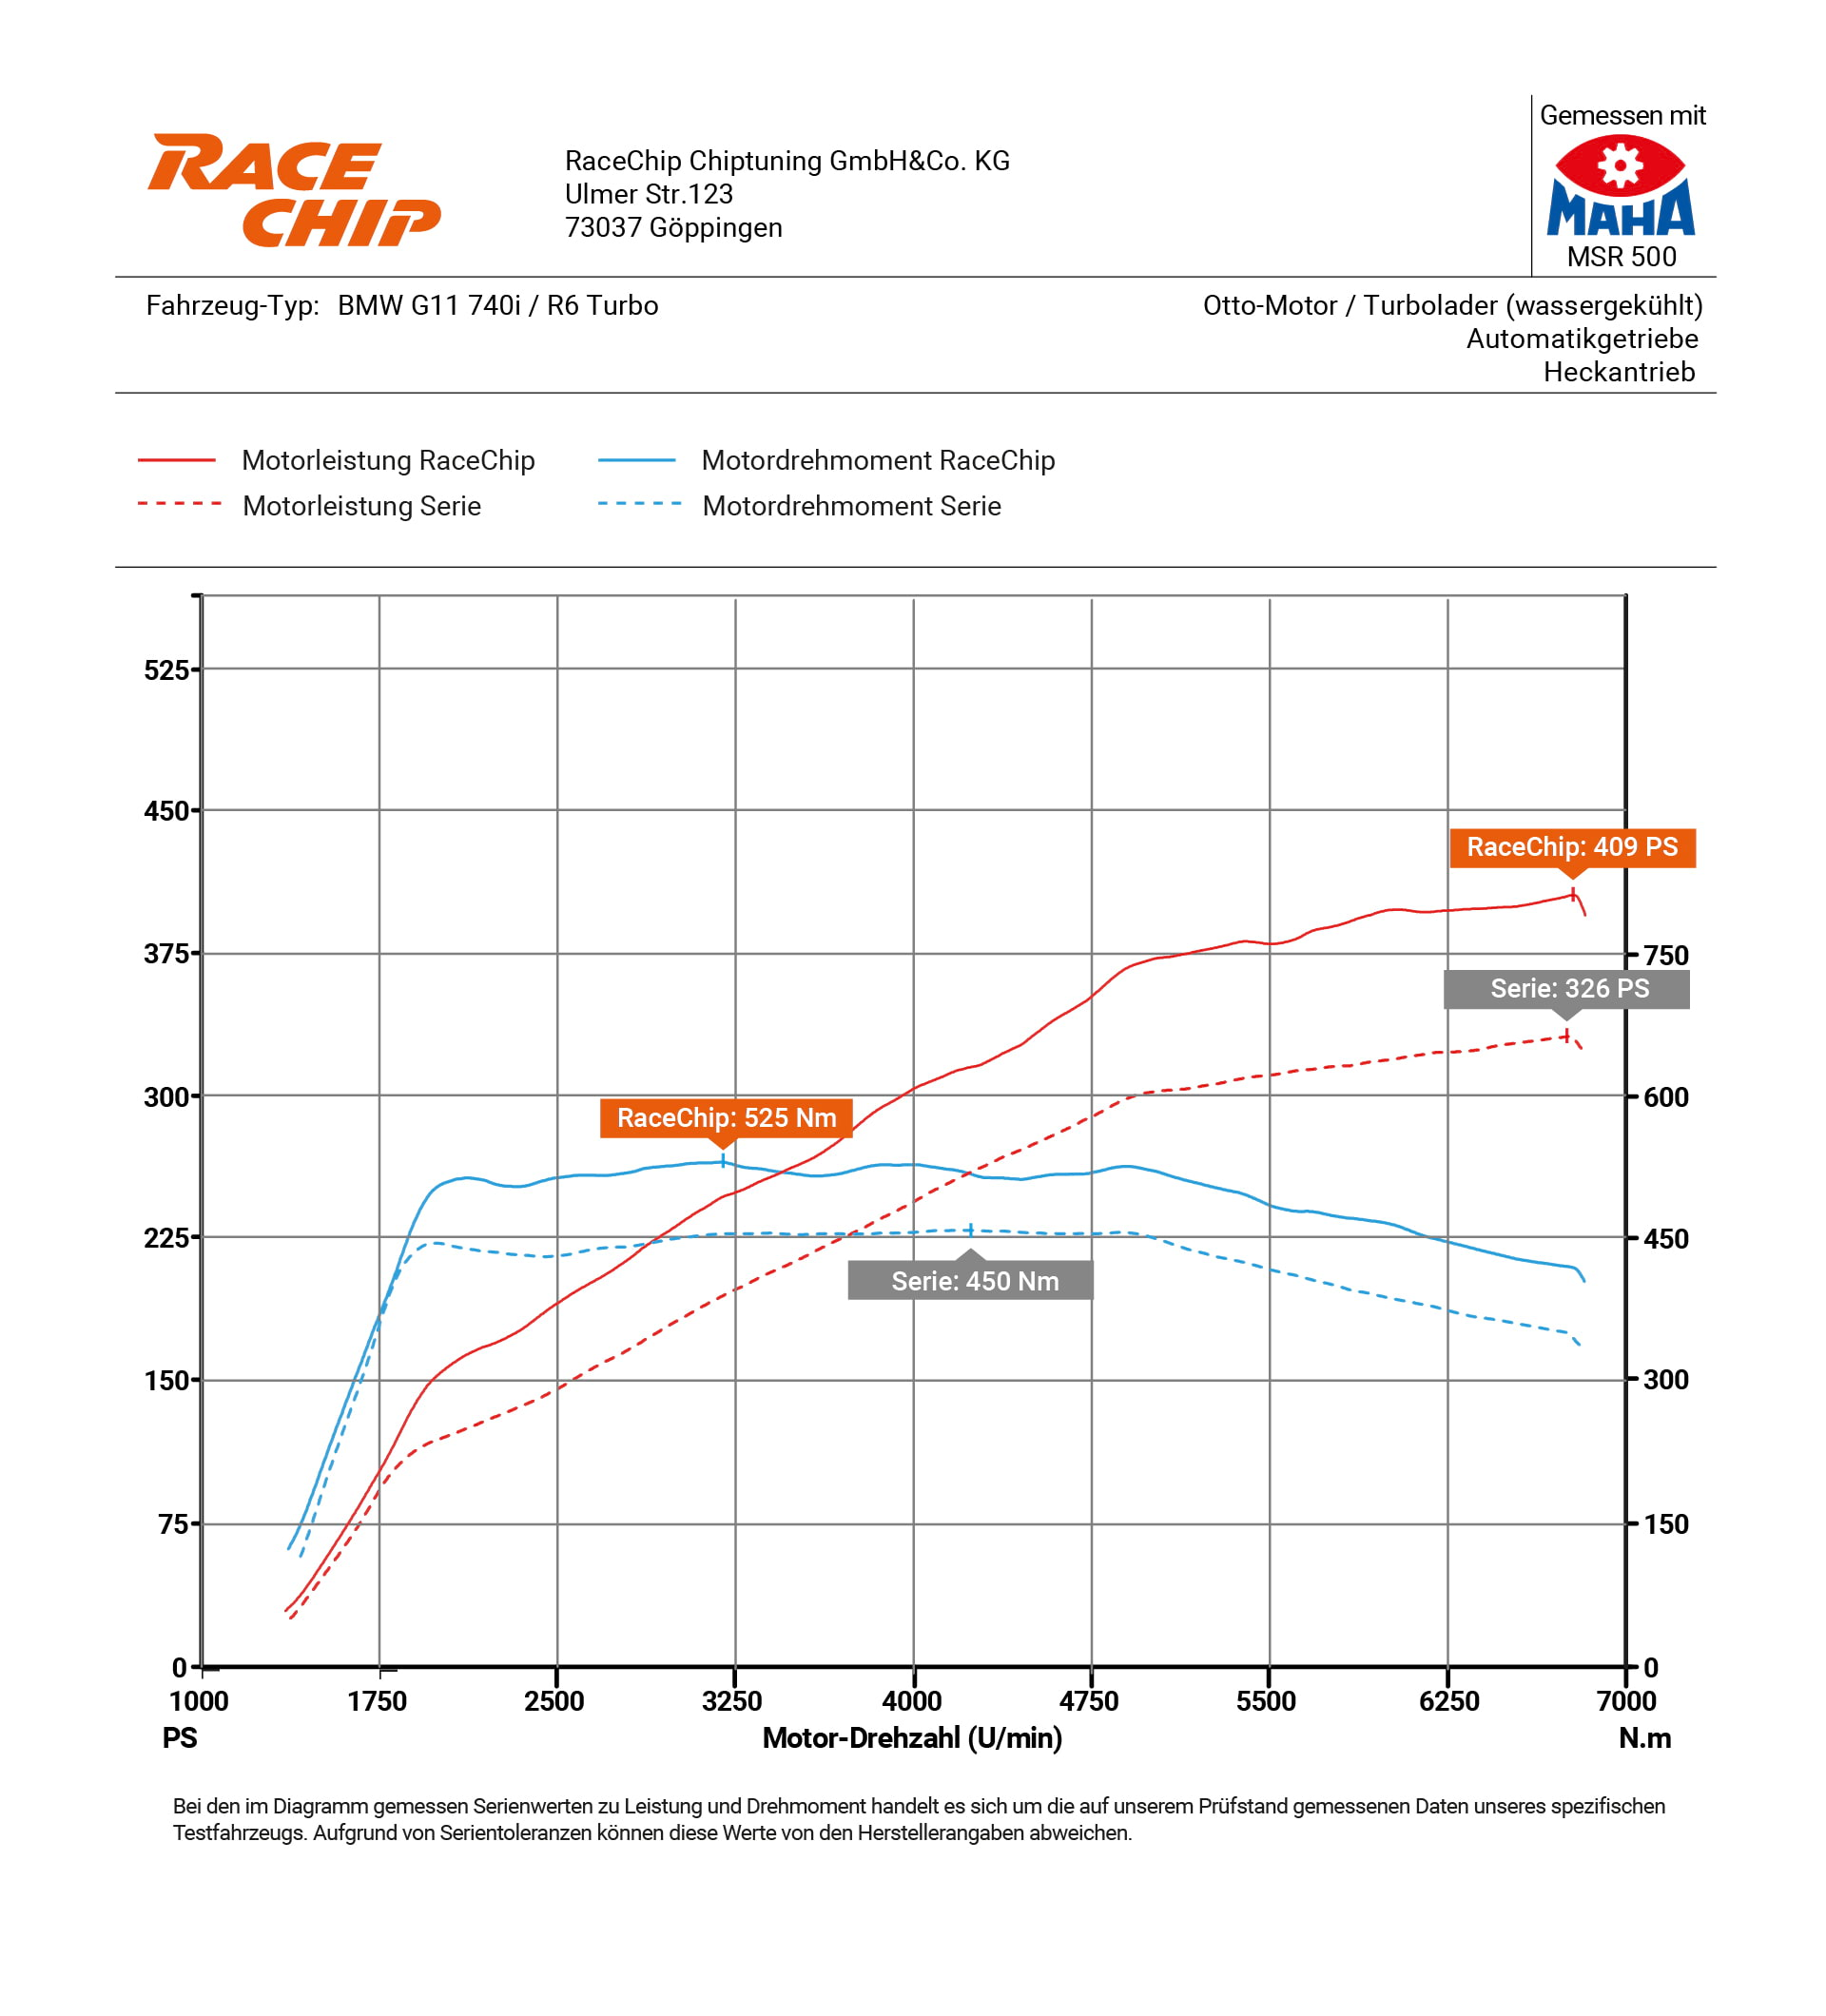 Incredible performance increase of the BMW 740i - RaceChip News